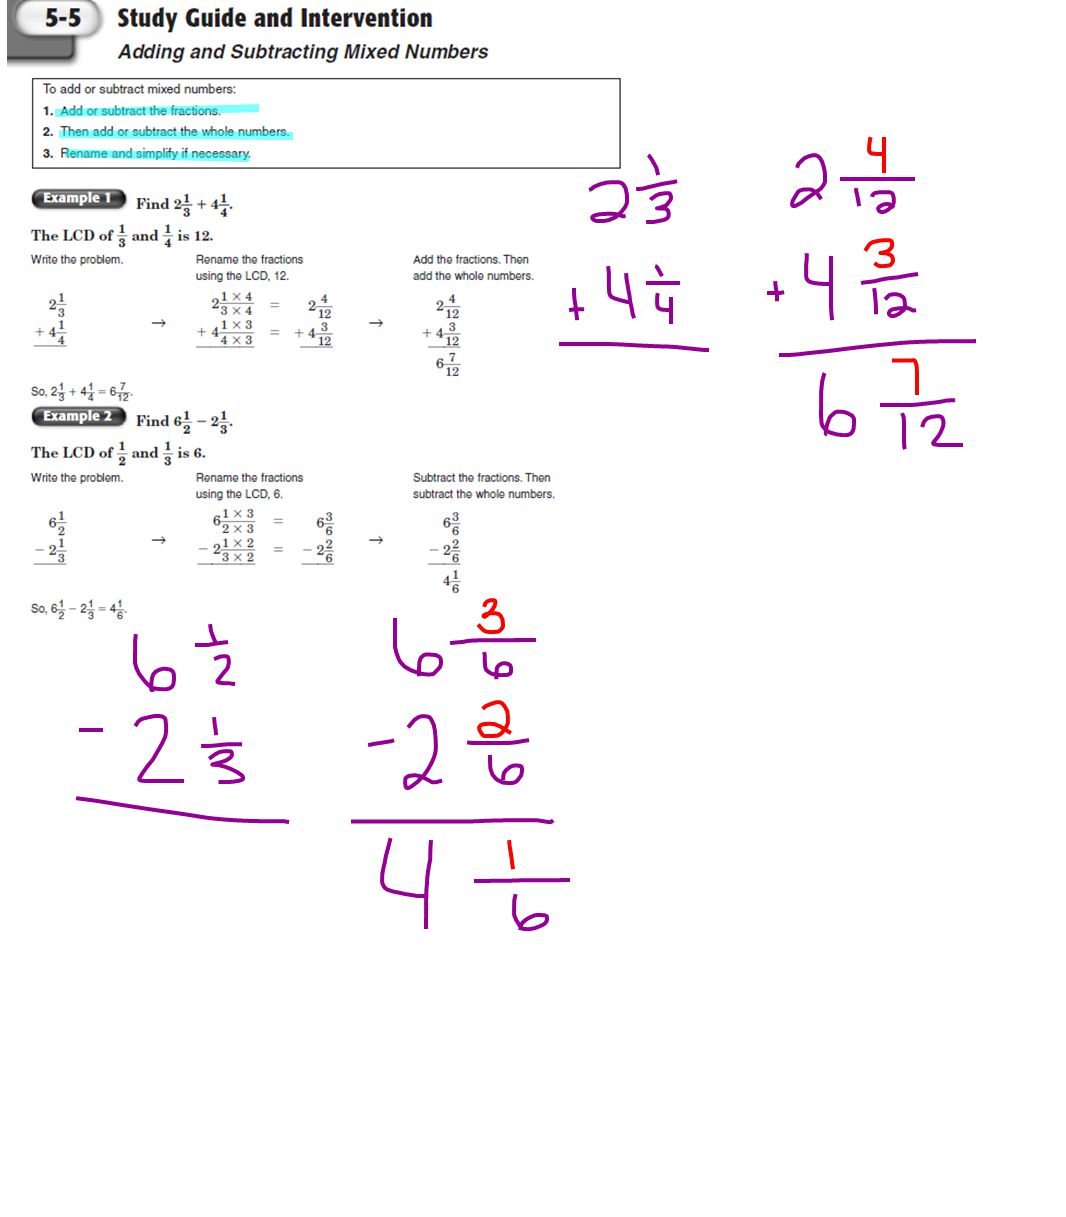 worksheet Subtracting Whole Numbers From Fractions adding mixed numbers ar 1 i can make equivalent fractions ppt fractions